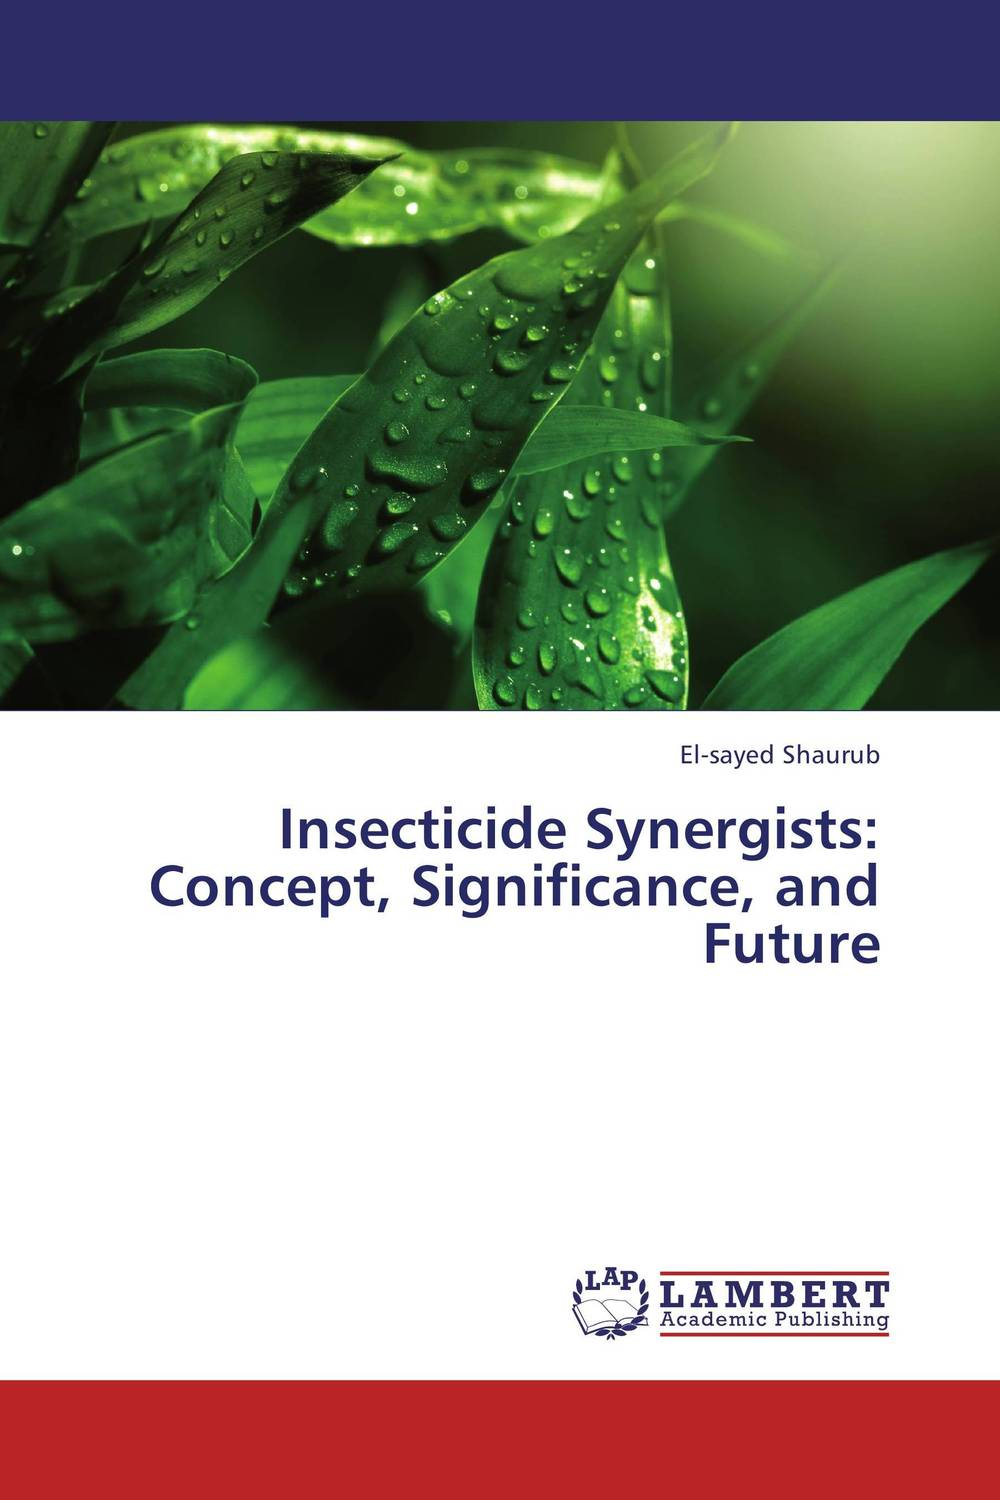 Insecticide Synergists: Concept, Significance, and Future erikson s fall of light the second book in the kharkanas trilogy